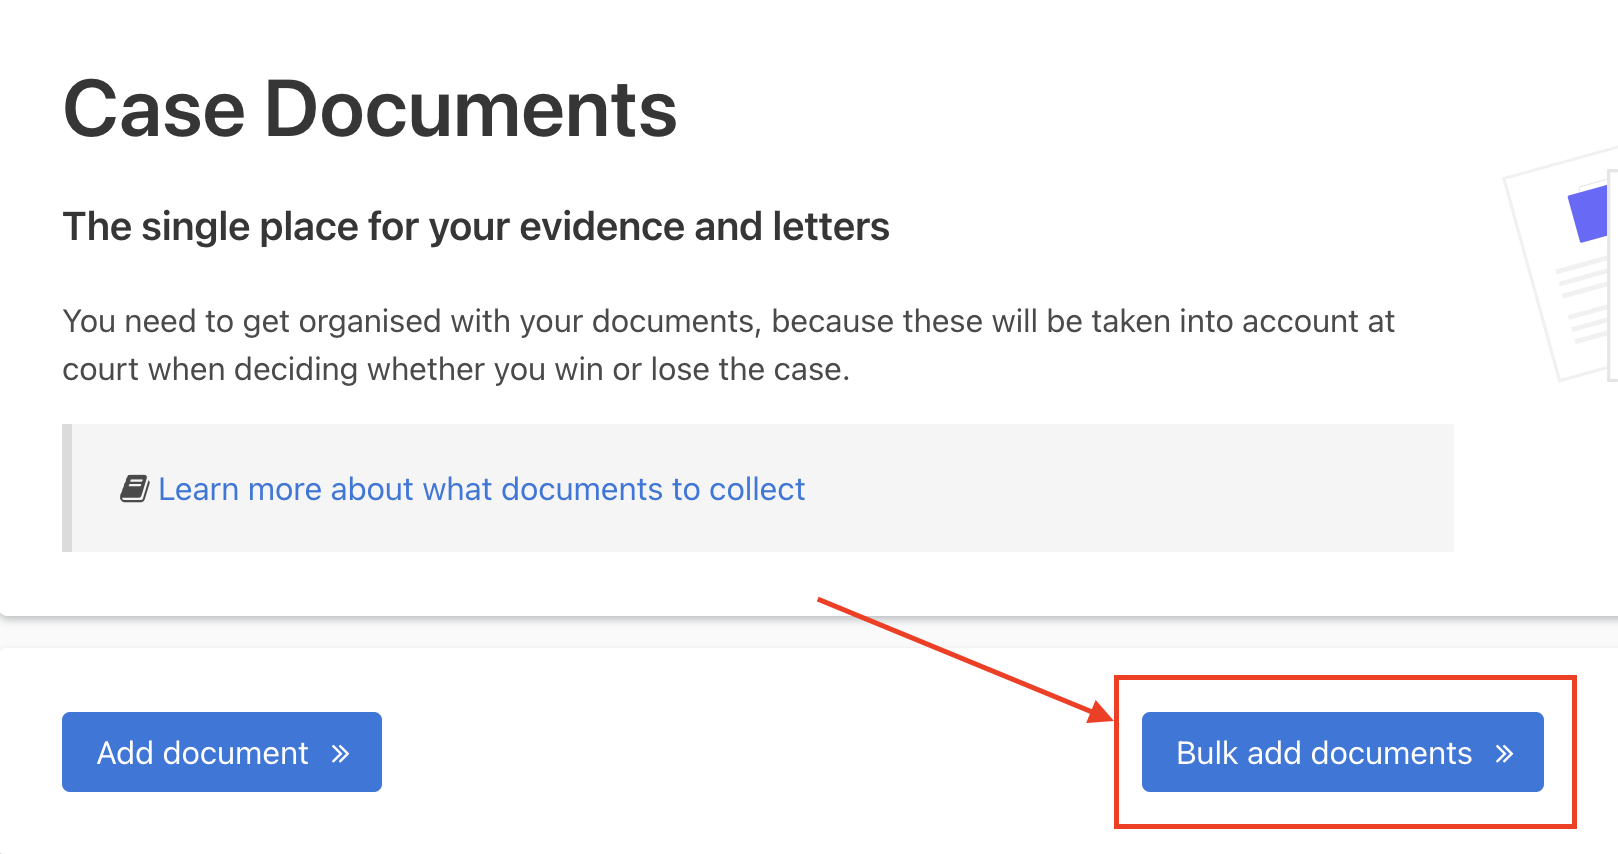 The 'Bulk add documents' button is next after the 'Add document' button